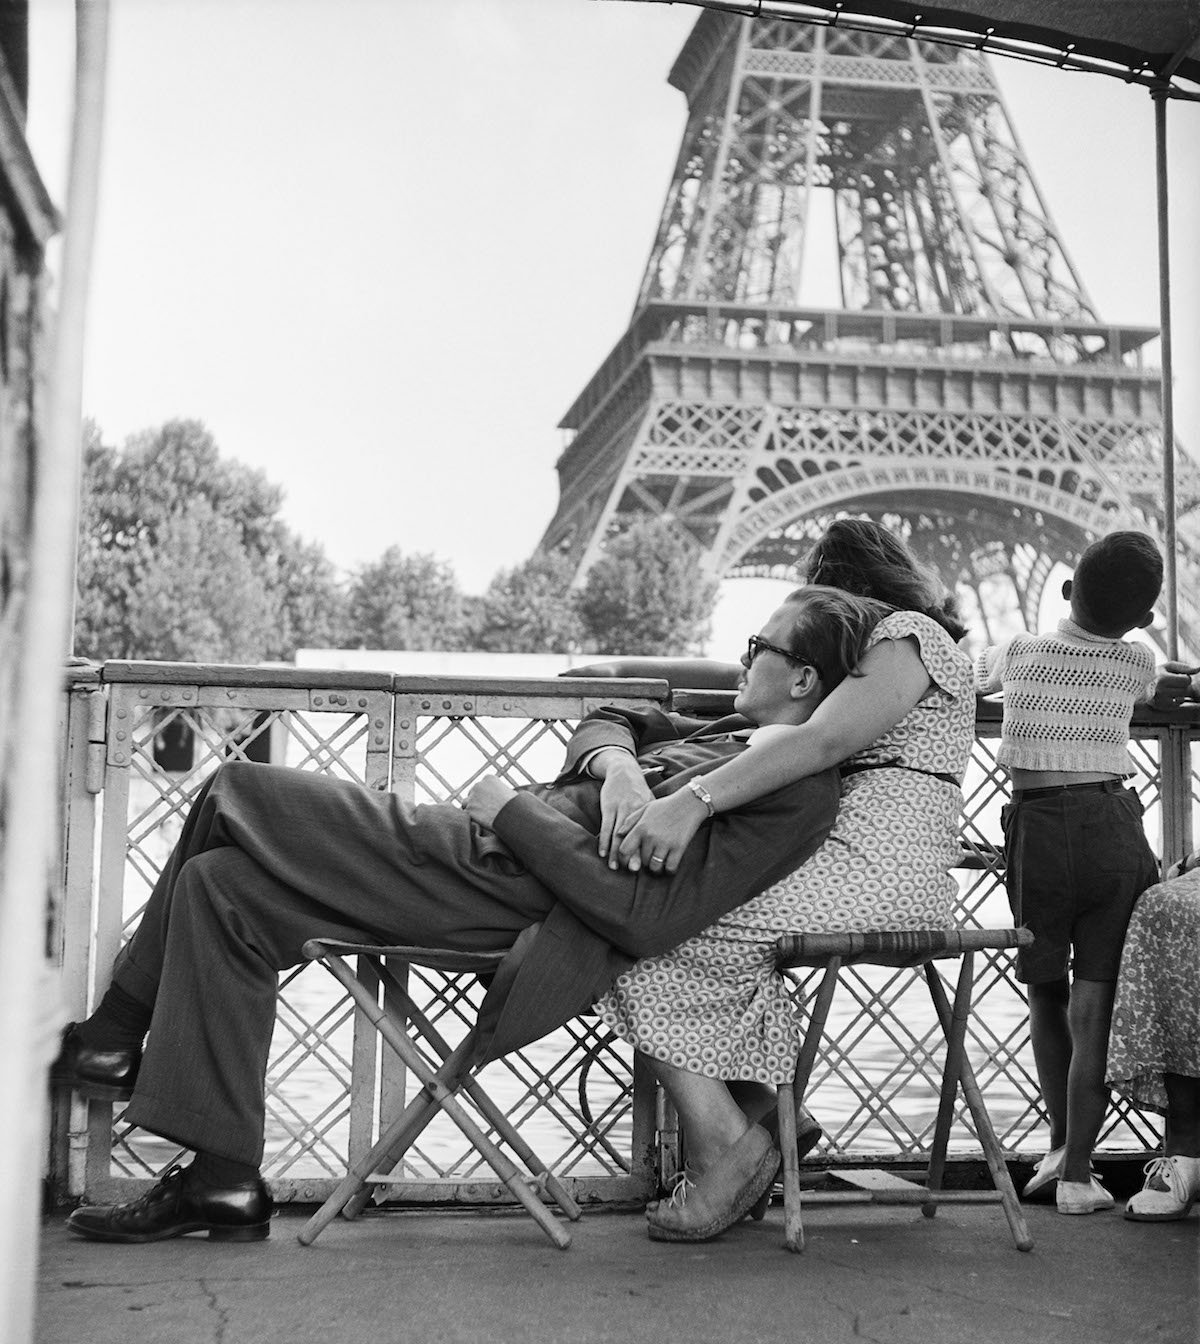 Paris Street Photography by Willy Ronis